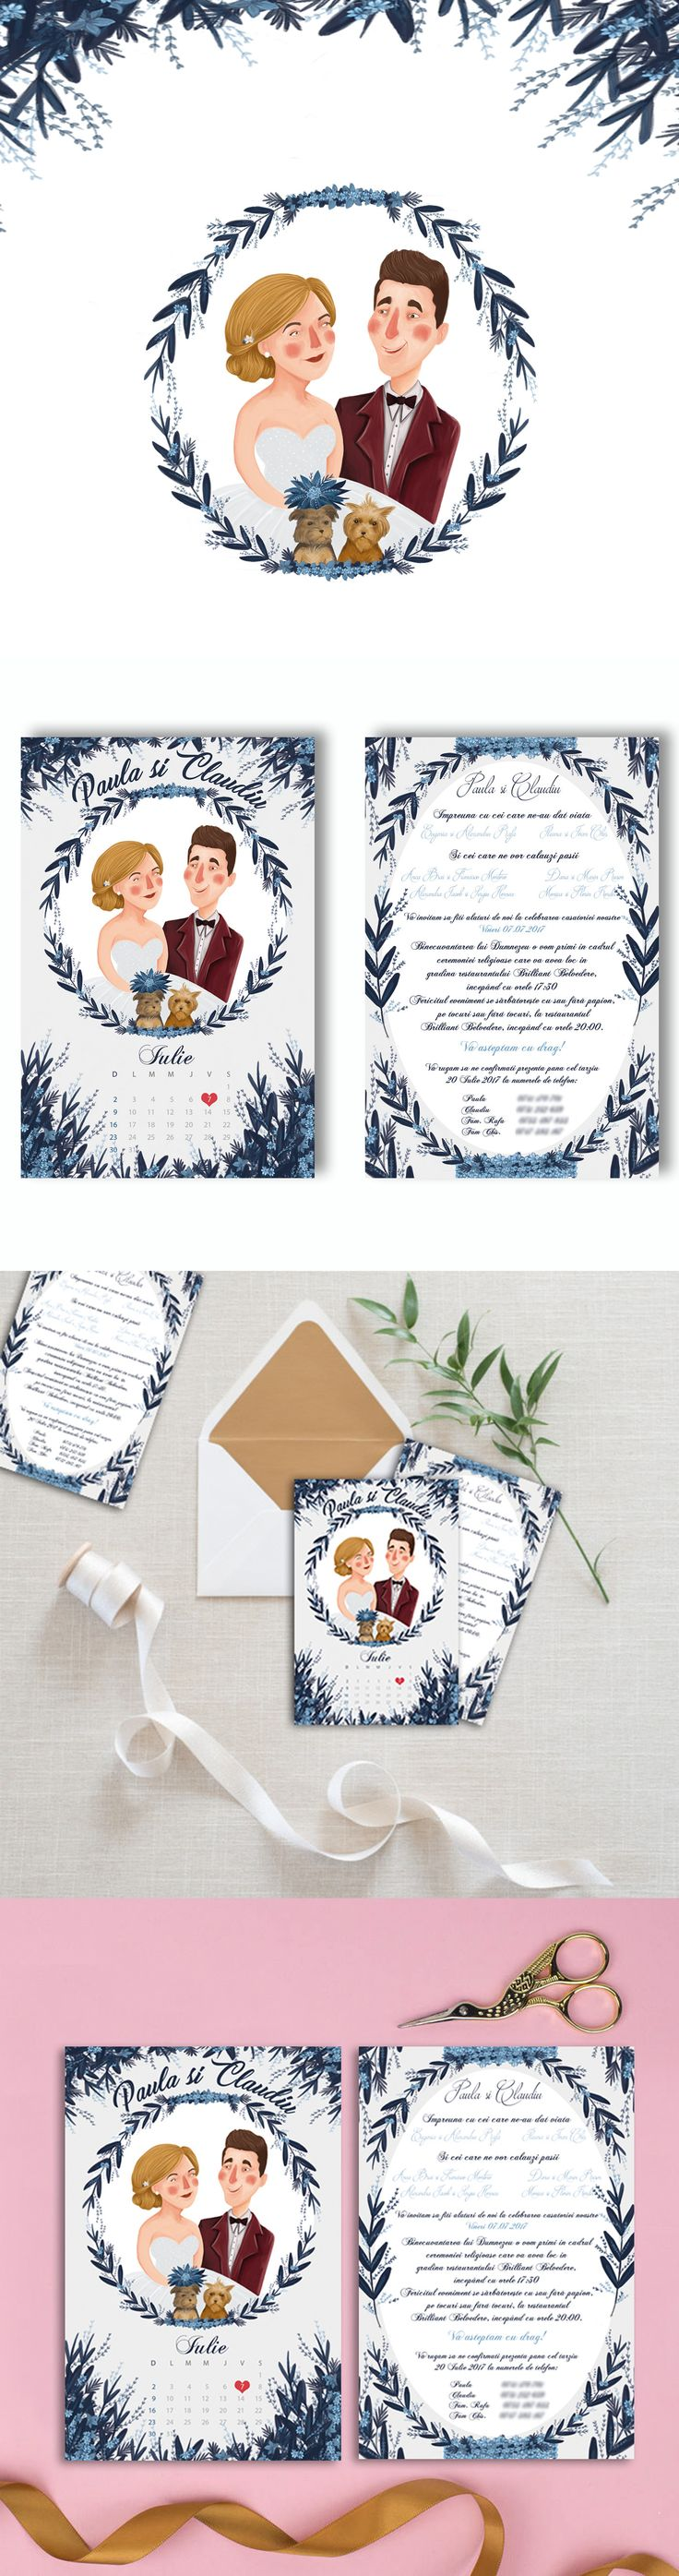 "Check out my @Behance project: ""Wedding invitations - Customized illustration"" https://www.behance.net/gallery/51596095/Wedding-invitations-Customized-illustration"